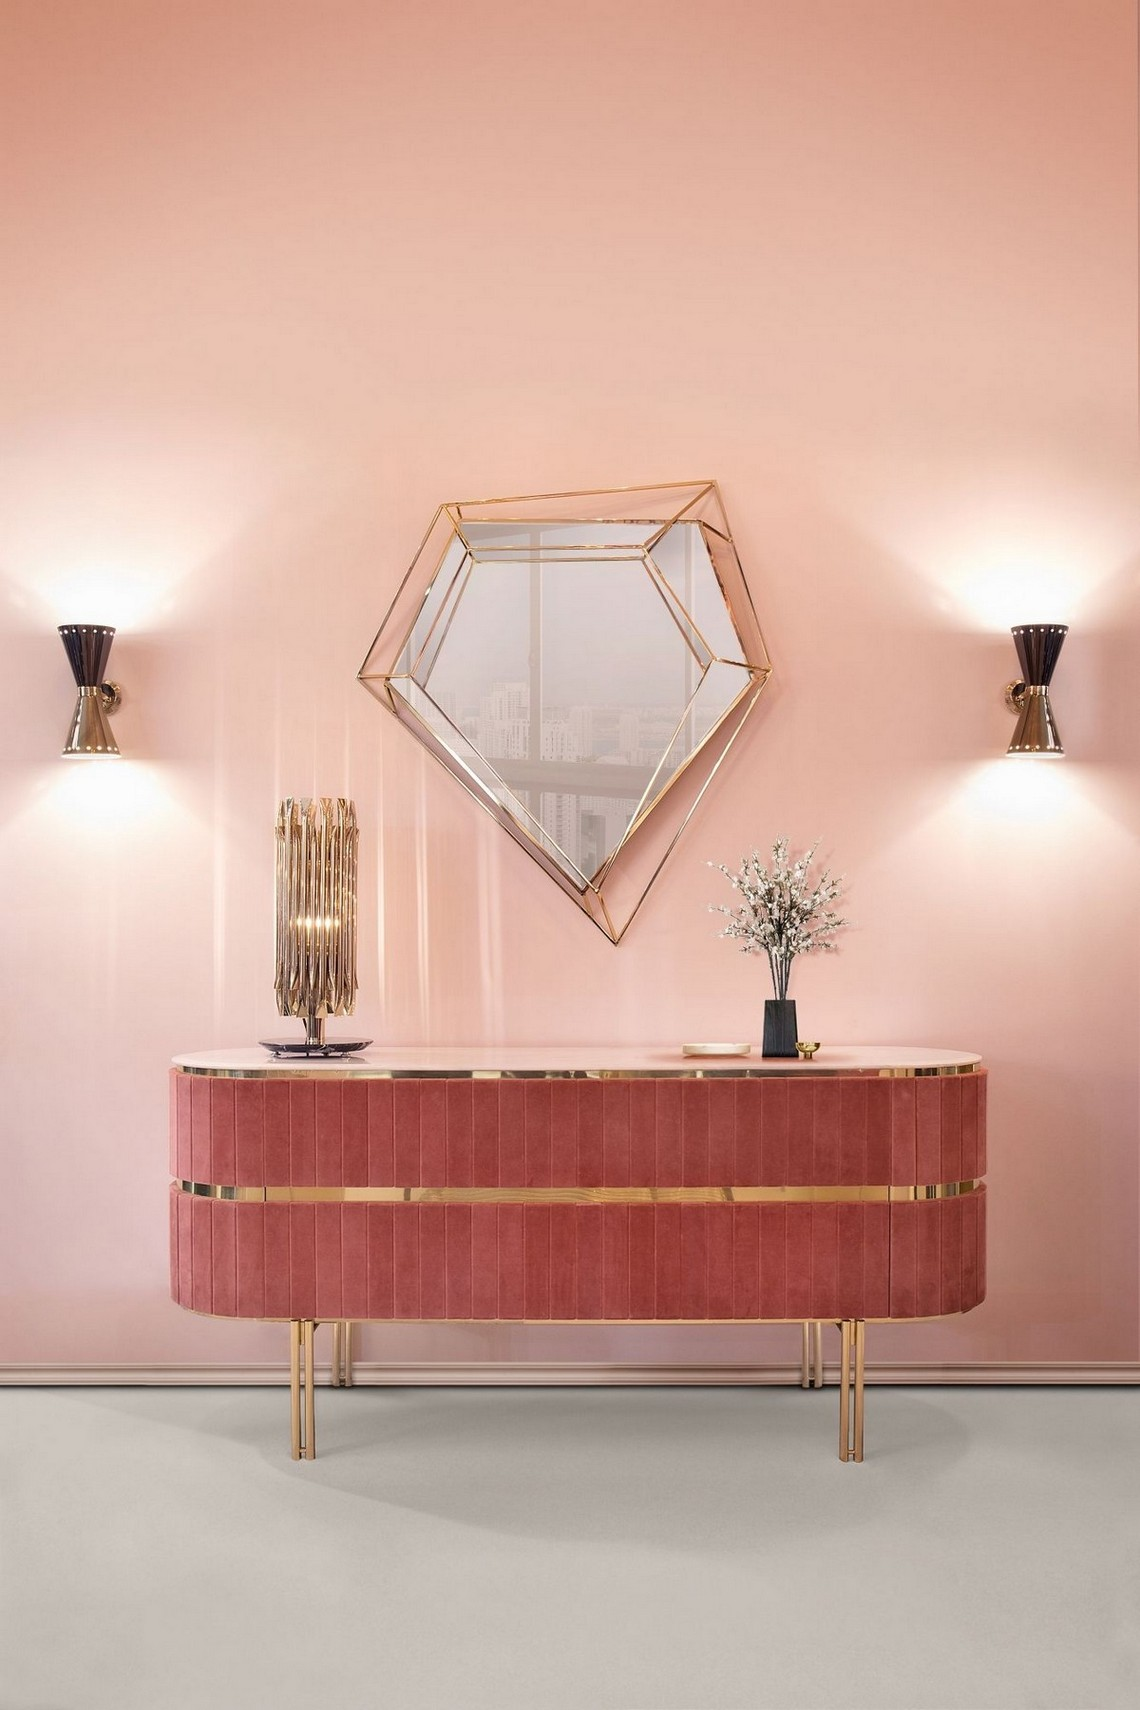 Modern Mirrors To Match Your Sideboard modern mirrors Modern Mirrors To Match Your Sideboard (Part II) diamond